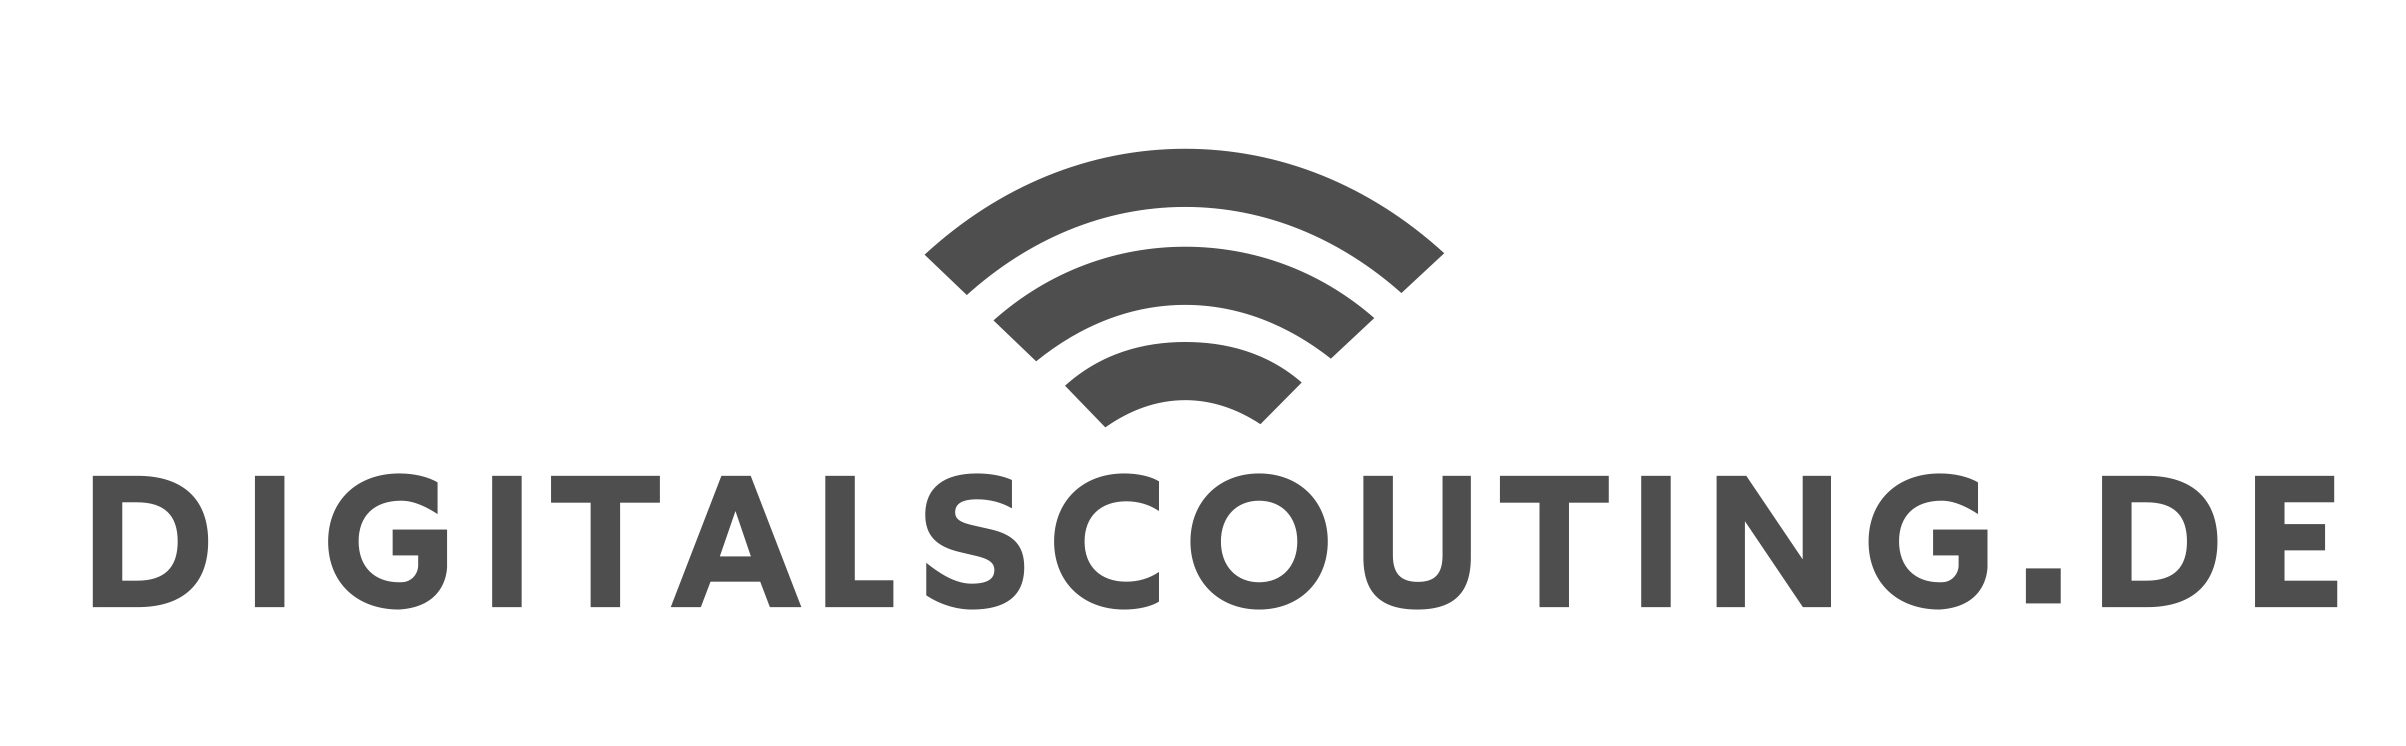 Digitalscouting.de